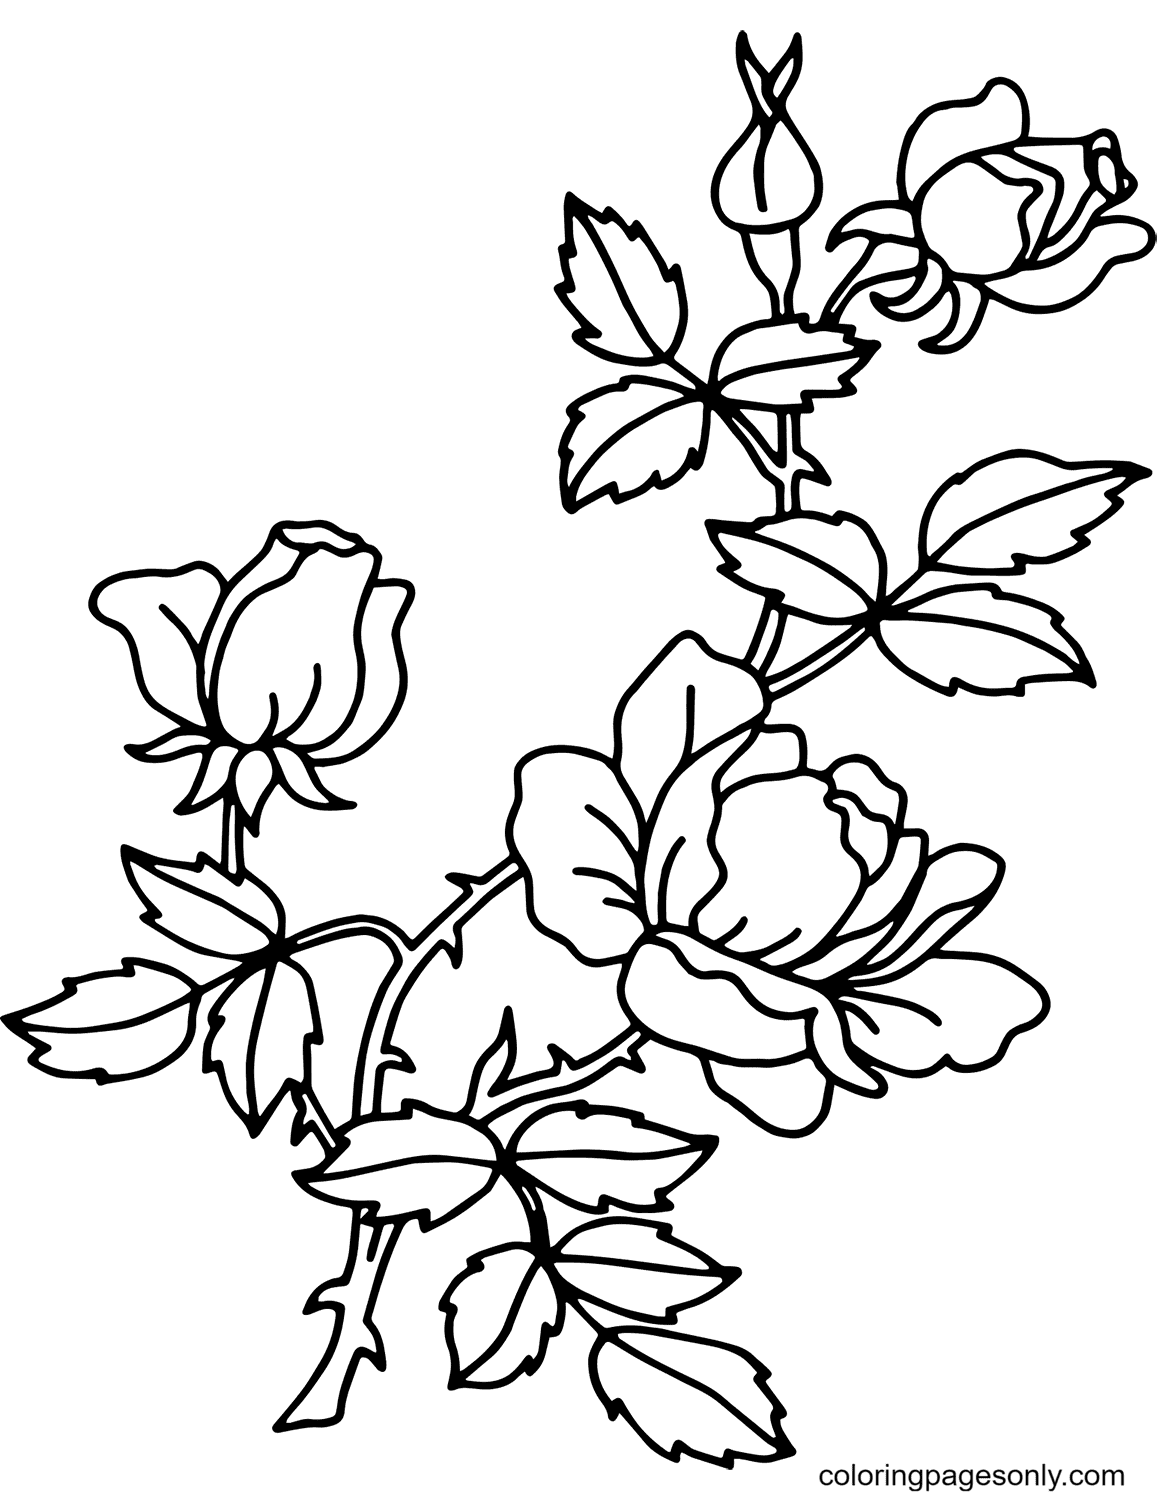 Simple Rose Branch Coloring Page